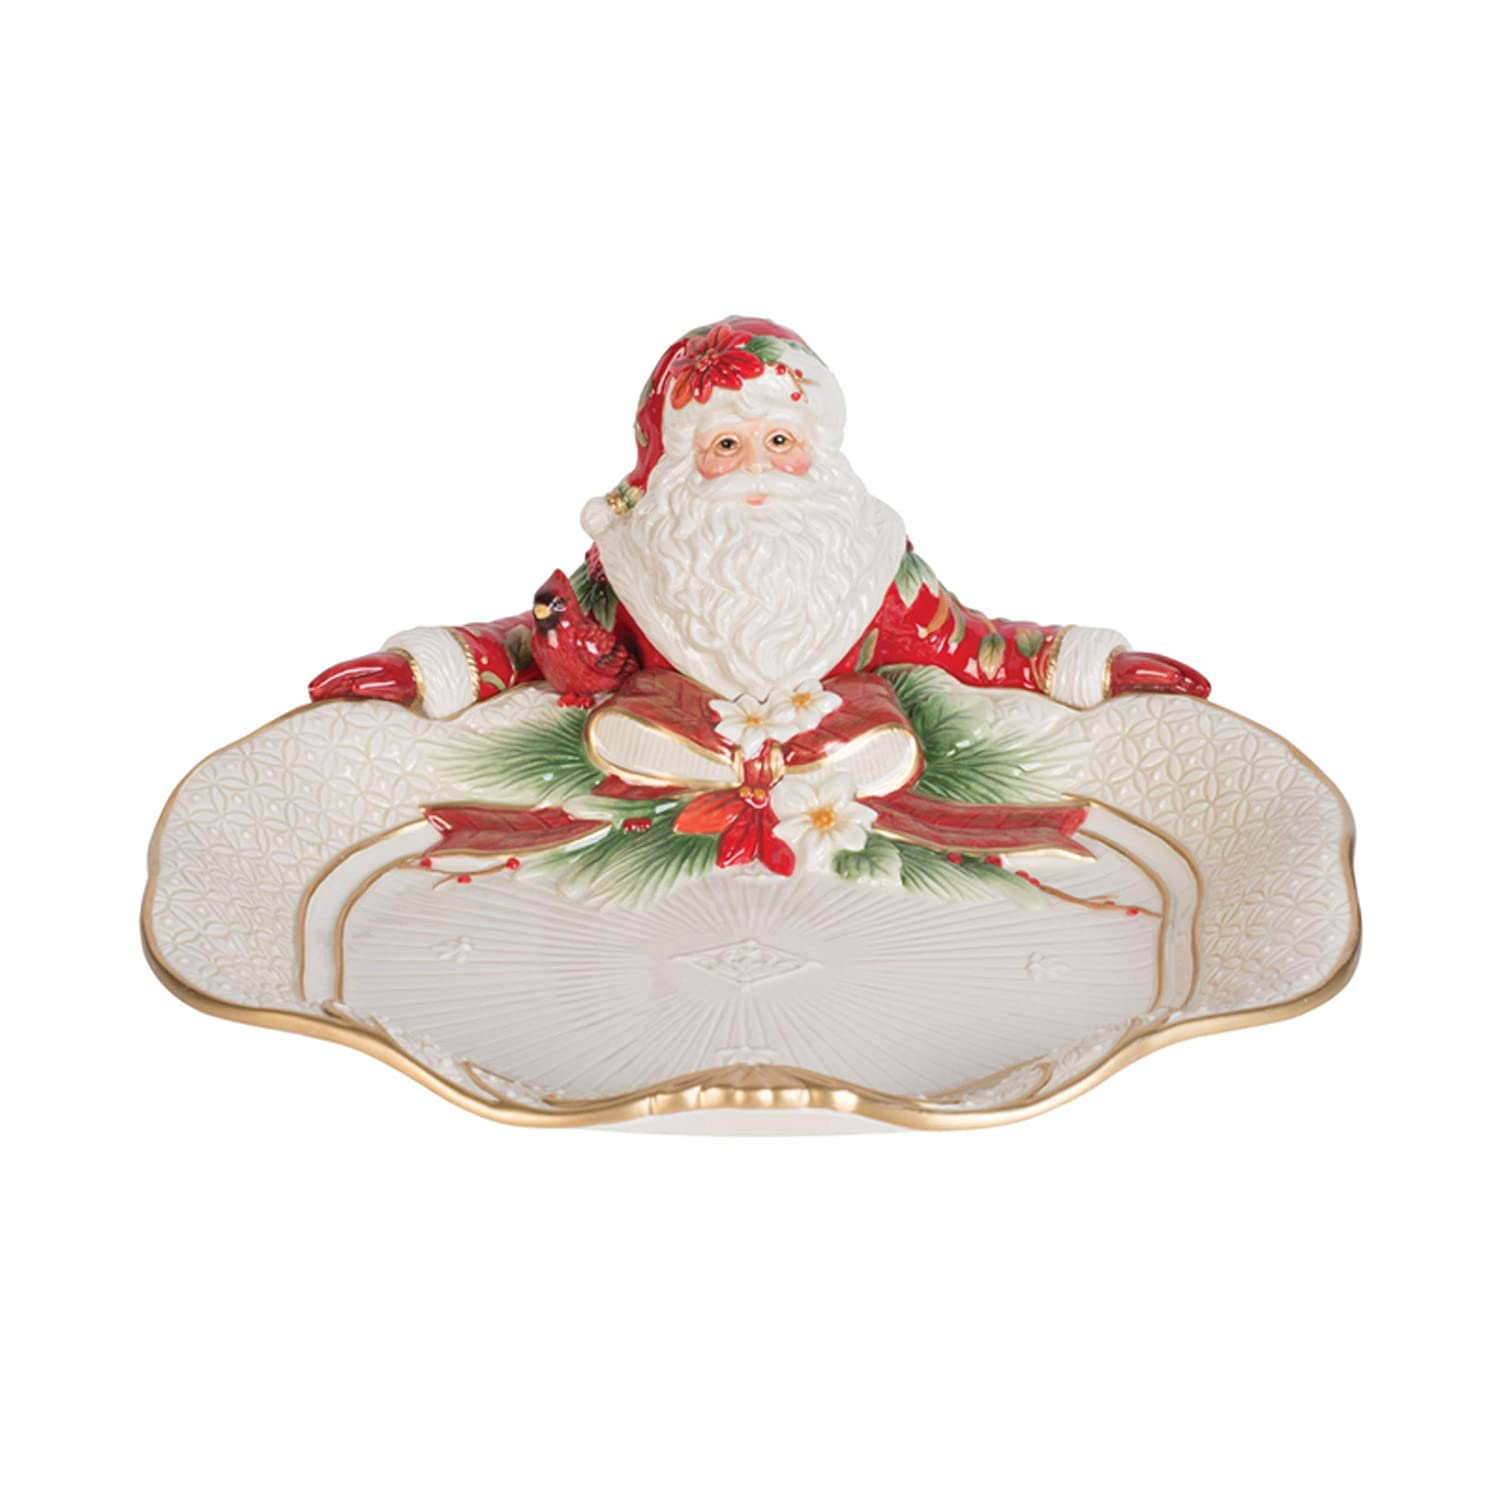 Fitz and Floyd 49-758 Cardinal Christmas Serving Platter, 33cm, Holiday Red B07G4YYRNL